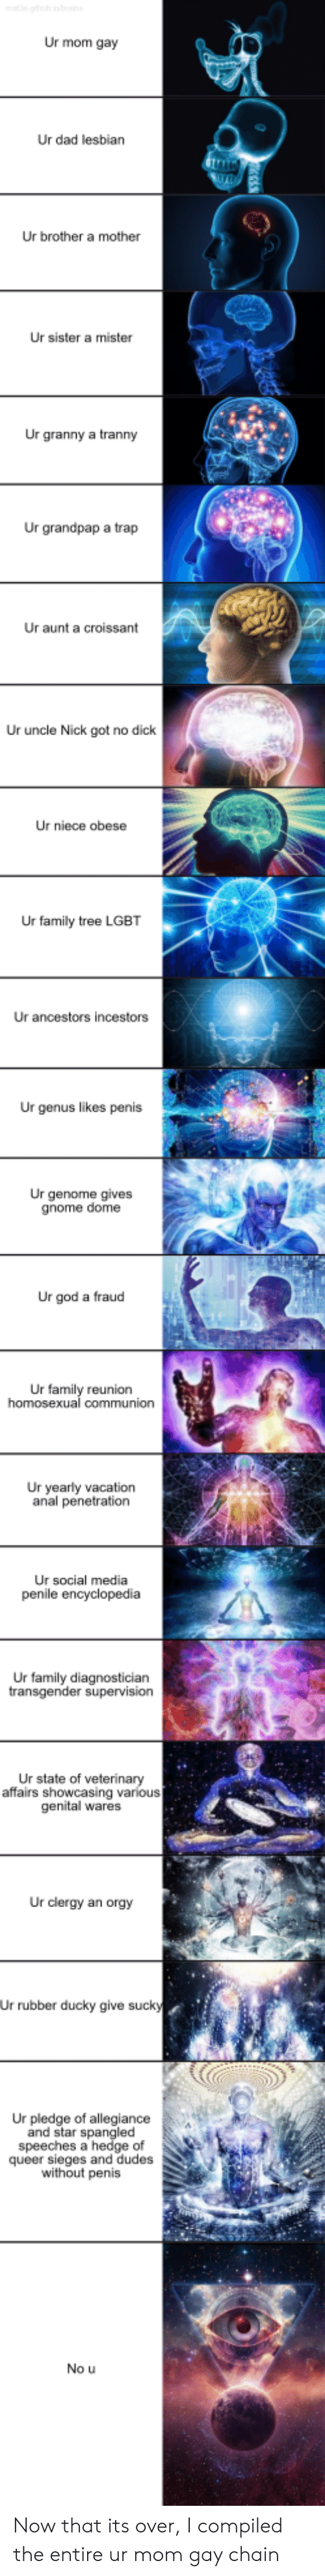 Pledge of Allegiance: Ur mom gay  Ur dad lesbian  Ur brother a mother  Ur sister a mister  Ur granny a tranny  Ur grandpap a trap  Ur aunt a croissant  Ur uncle Nick got no dick  Ur niece obese  Ur family tree LGBT  Ur ancestors incestors  Ur genus likes penis  Ur genome gives  gnome dome  Ur god a fraud  Ur family reunion  Ur yearly vacation  anal penetration  Ur social media  Ur family diagnosticiarn  Ur state of veterinary  affairs showcasing various  genital wares  Ur clergy an orgy  Ur rubber ducky give suck  Ur pledge of allegiance  and star spangle  speeches a hedge of  queer sieges and dudes  without penis  No u Now that its over, I compiled the entire ur mom gay chain